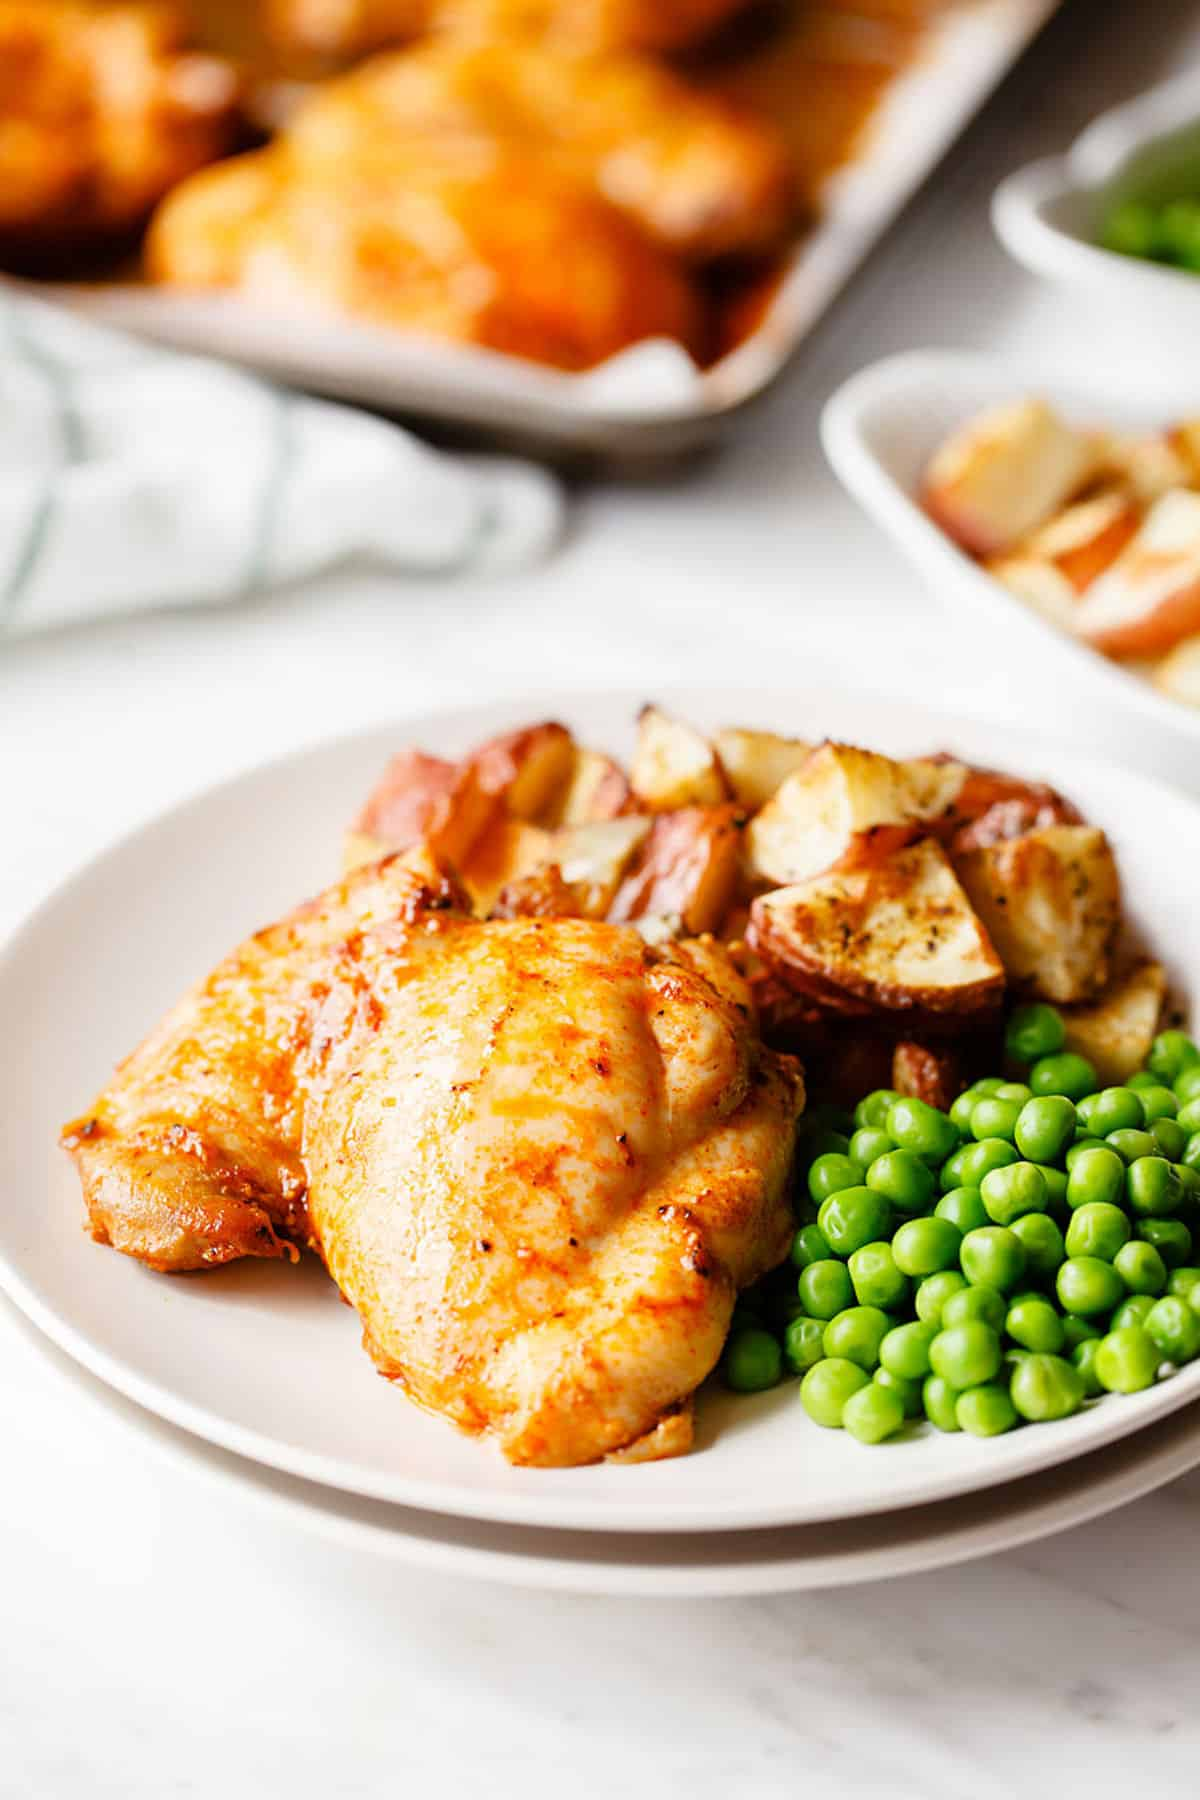 paprika chicken on a plate with peas and potatoes